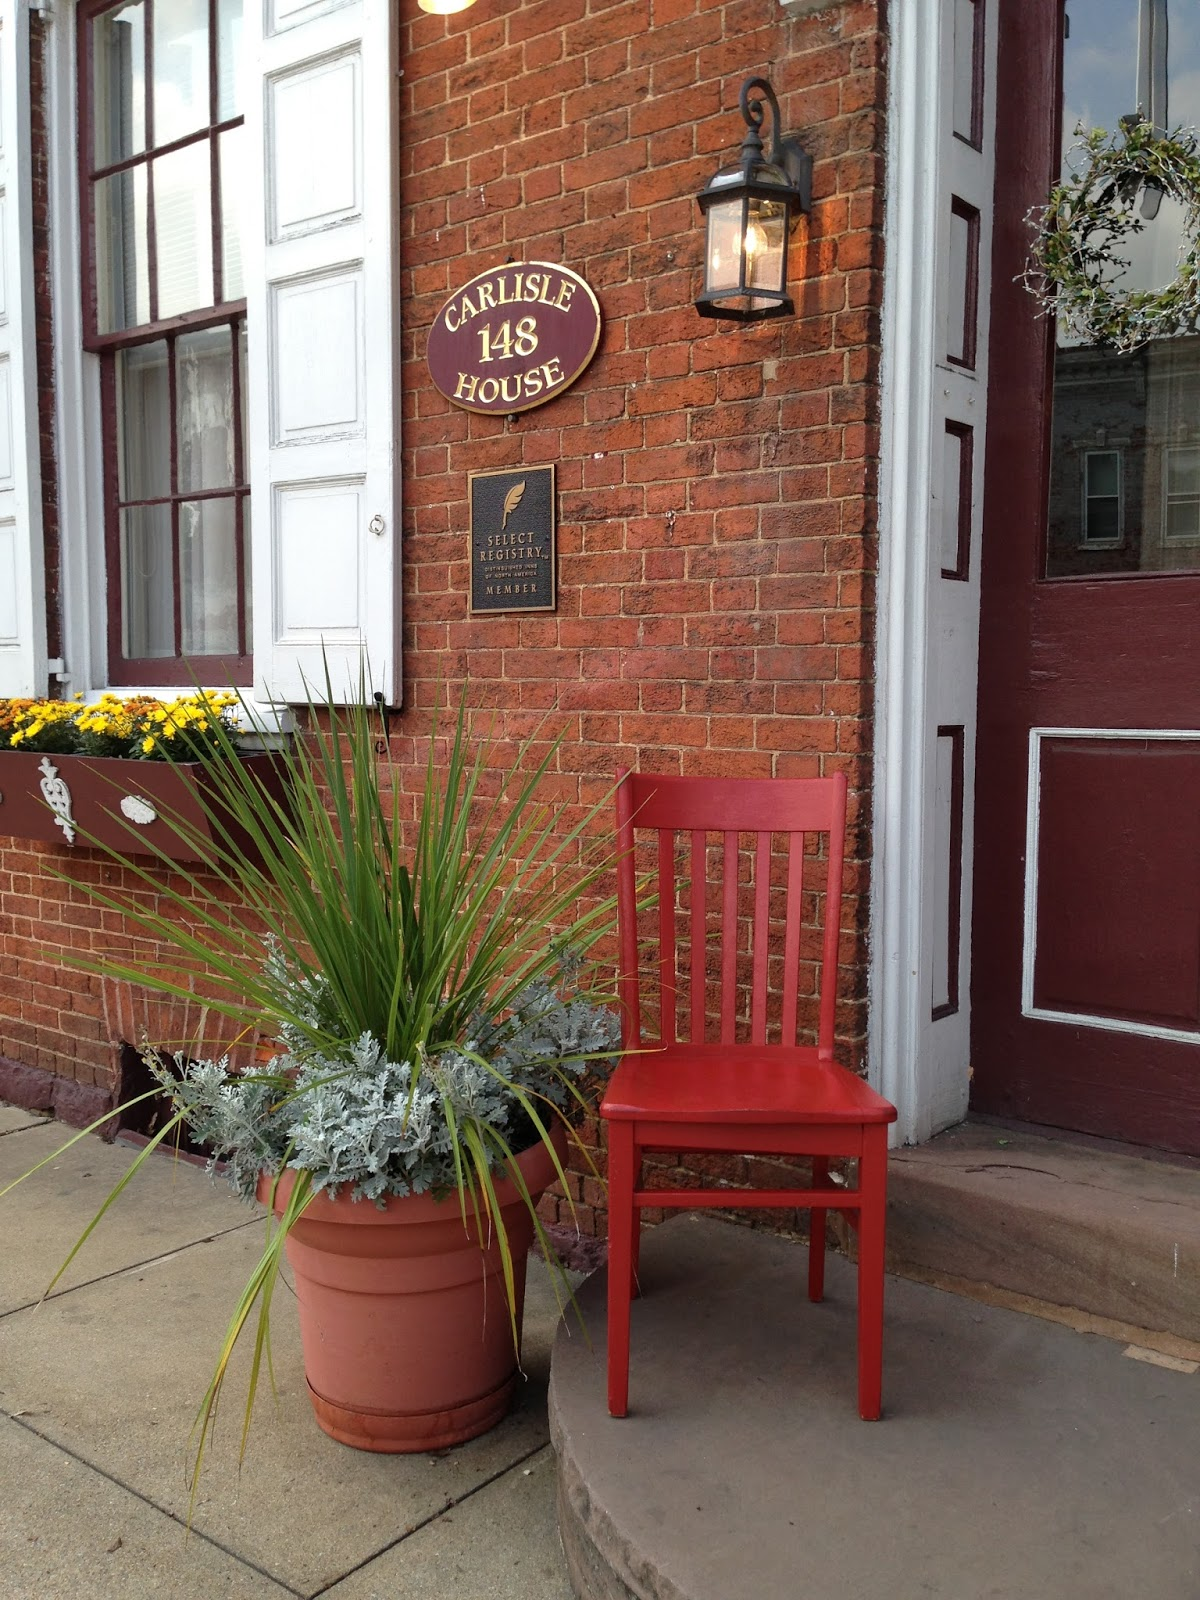 Carlisle house bed breakfast blog red chair travels to for The carlisle house